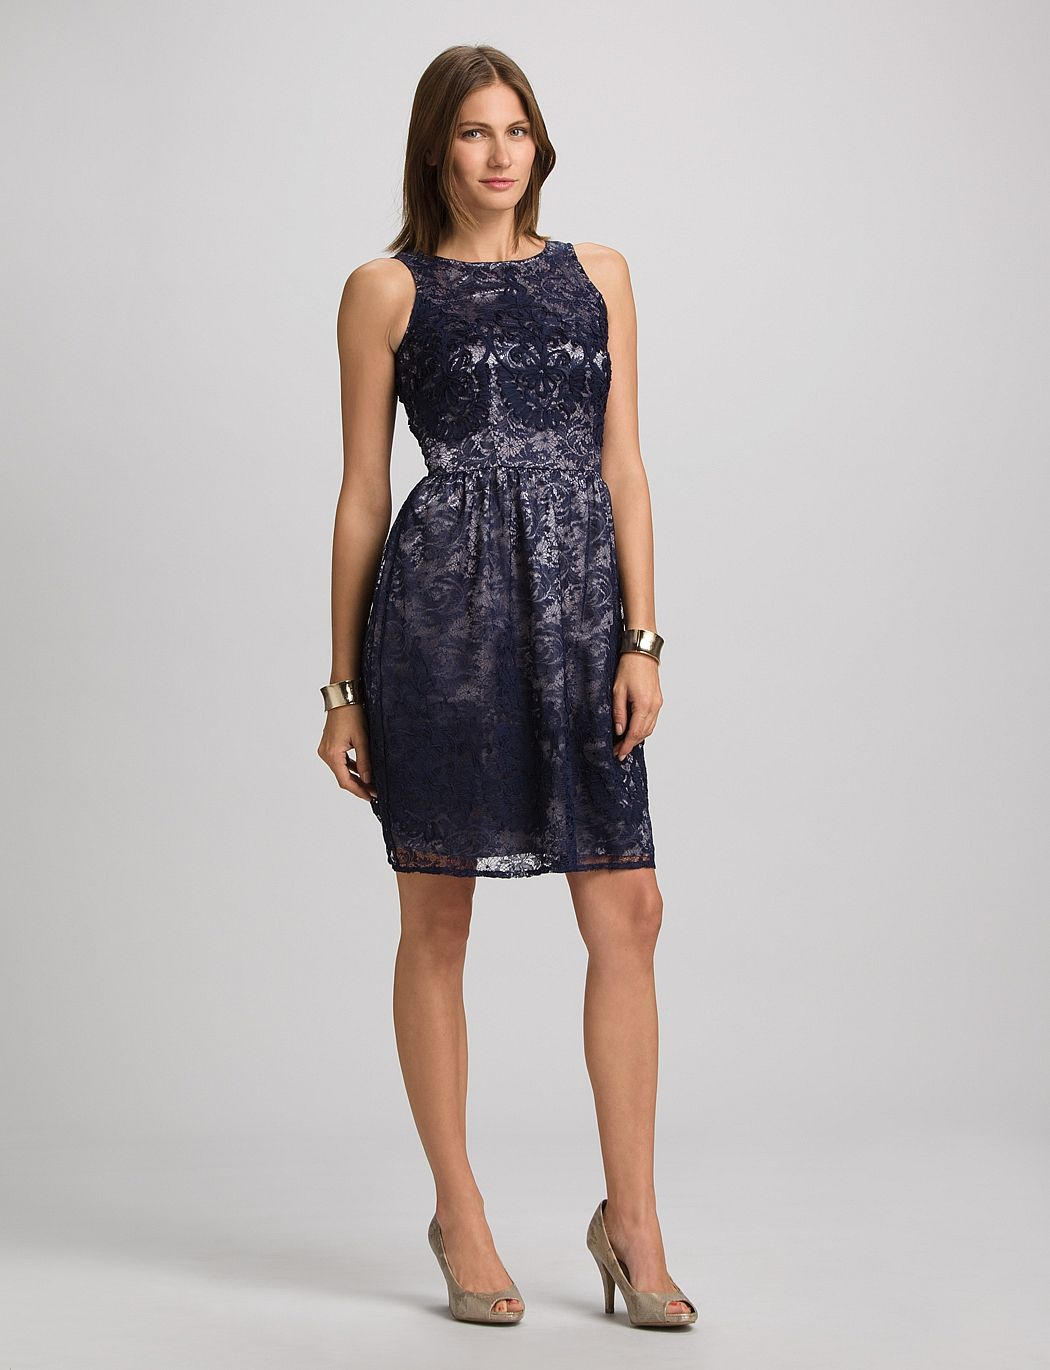   Textured Satin And Lace Dress   dressbarn